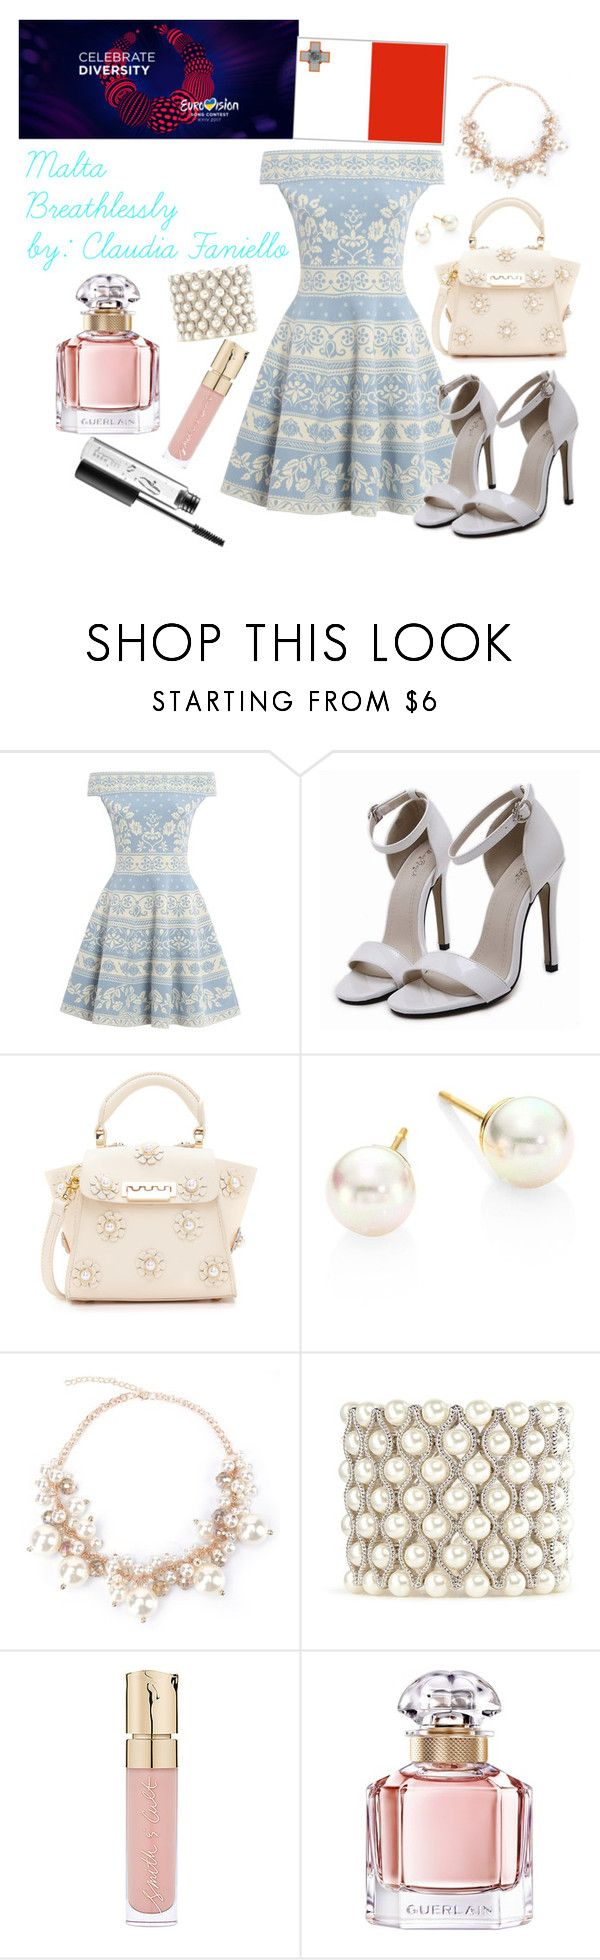 """Malta Eurovision 2017"" by grace-buerklin ❤ liked on Polyvore featuring Alexander McQueen, ZAC Zac Posen, Majorica, Kenneth Jay Lane, Smith & Cult, Guerlain, MAC Cosmetics and eurovision2017"